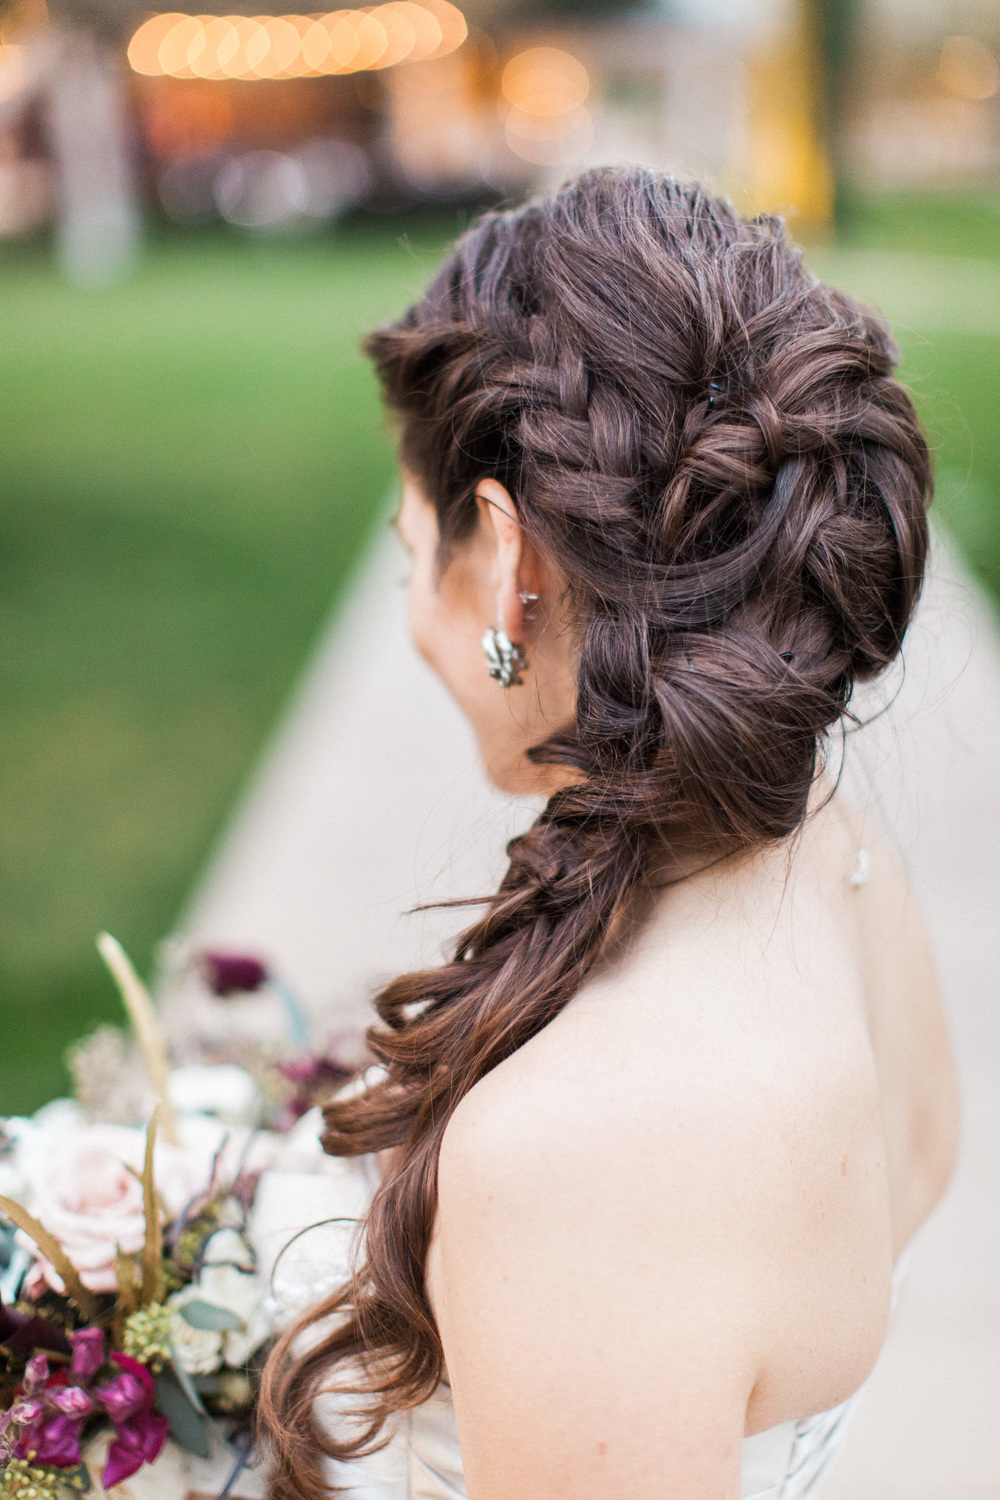 arizona wedding planner, wedding, arizona wedding, scottsdale wedding planner, wedding hair, braid